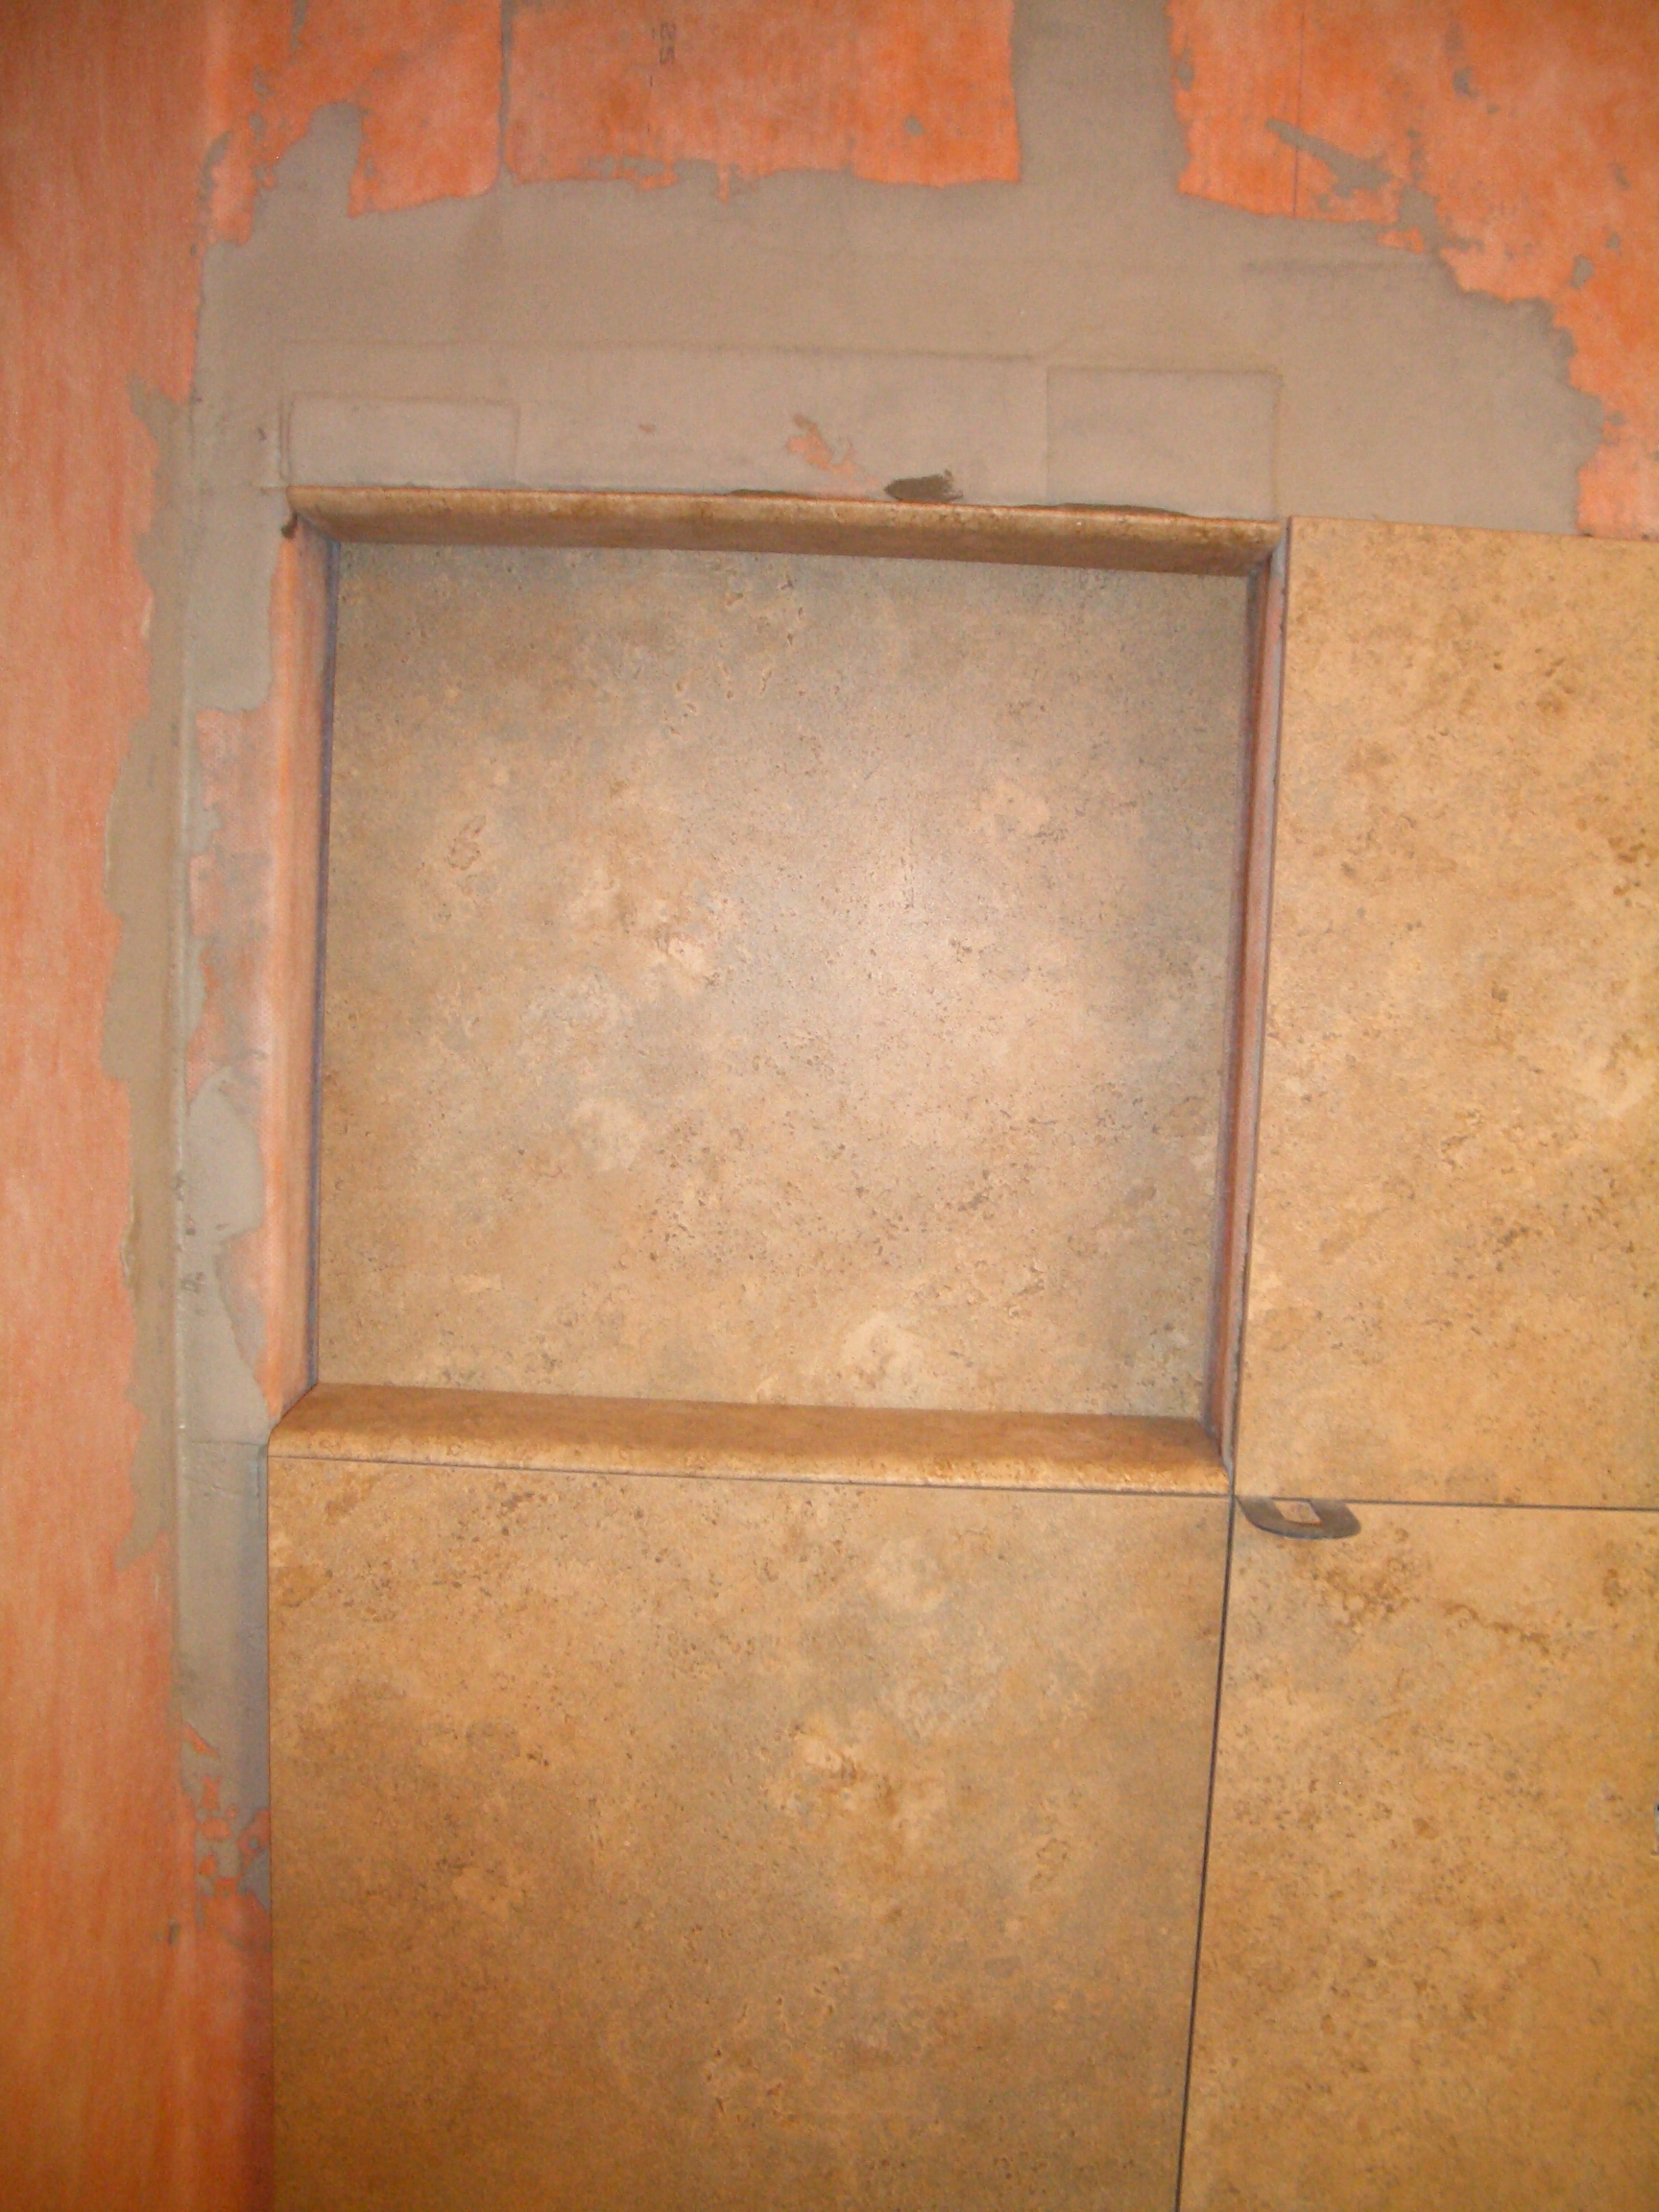 How to Build a Niche for your Shower – Part 3